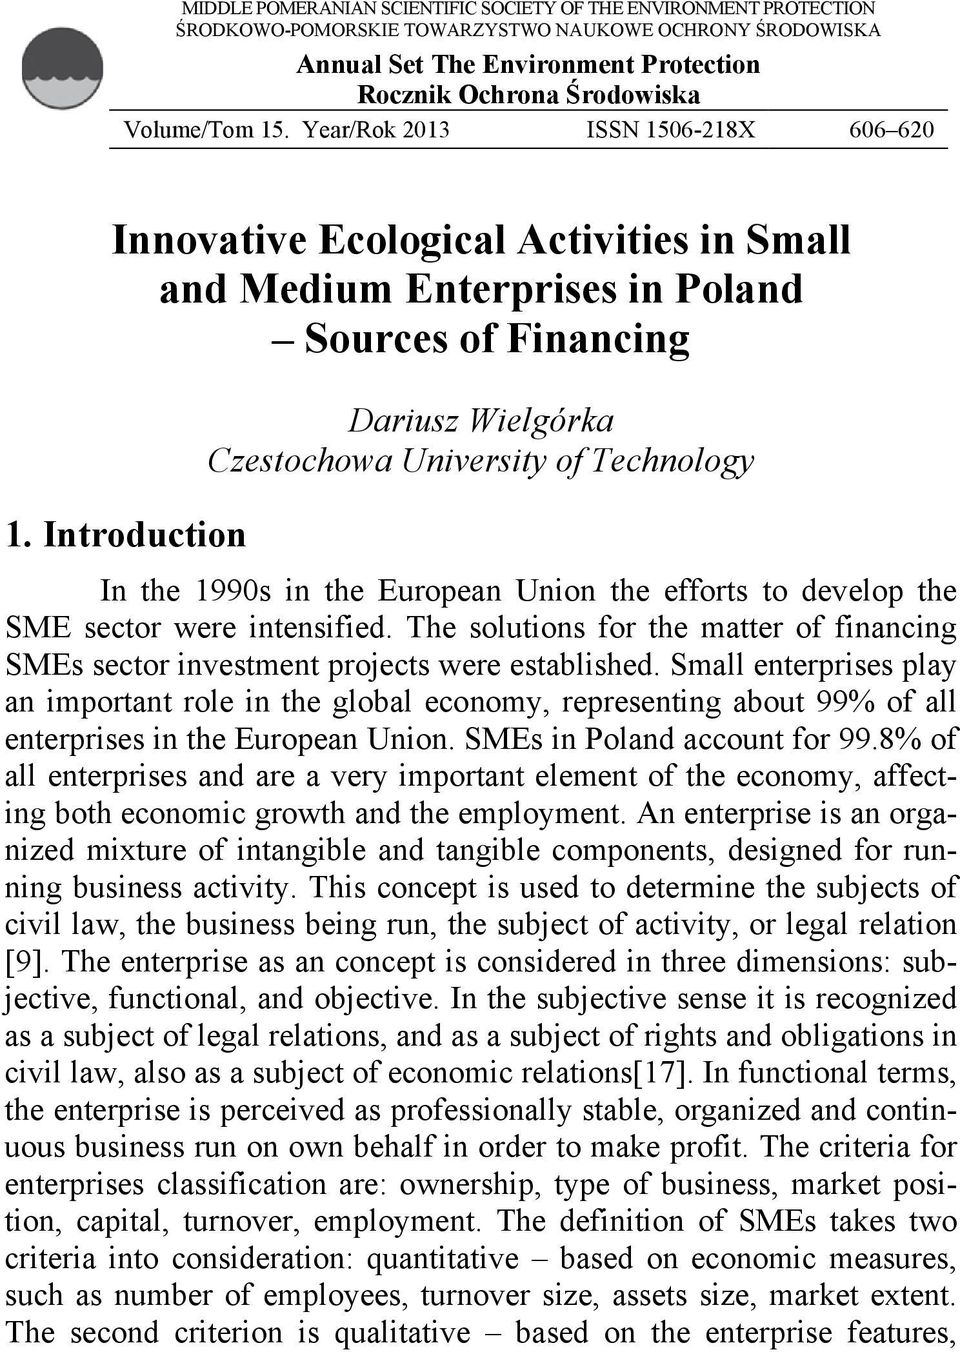 Introduction Dariusz Wielgórka Czestochowa University of Technology In the 1990s in the European Union the efforts to develop the SME sector were intensified.